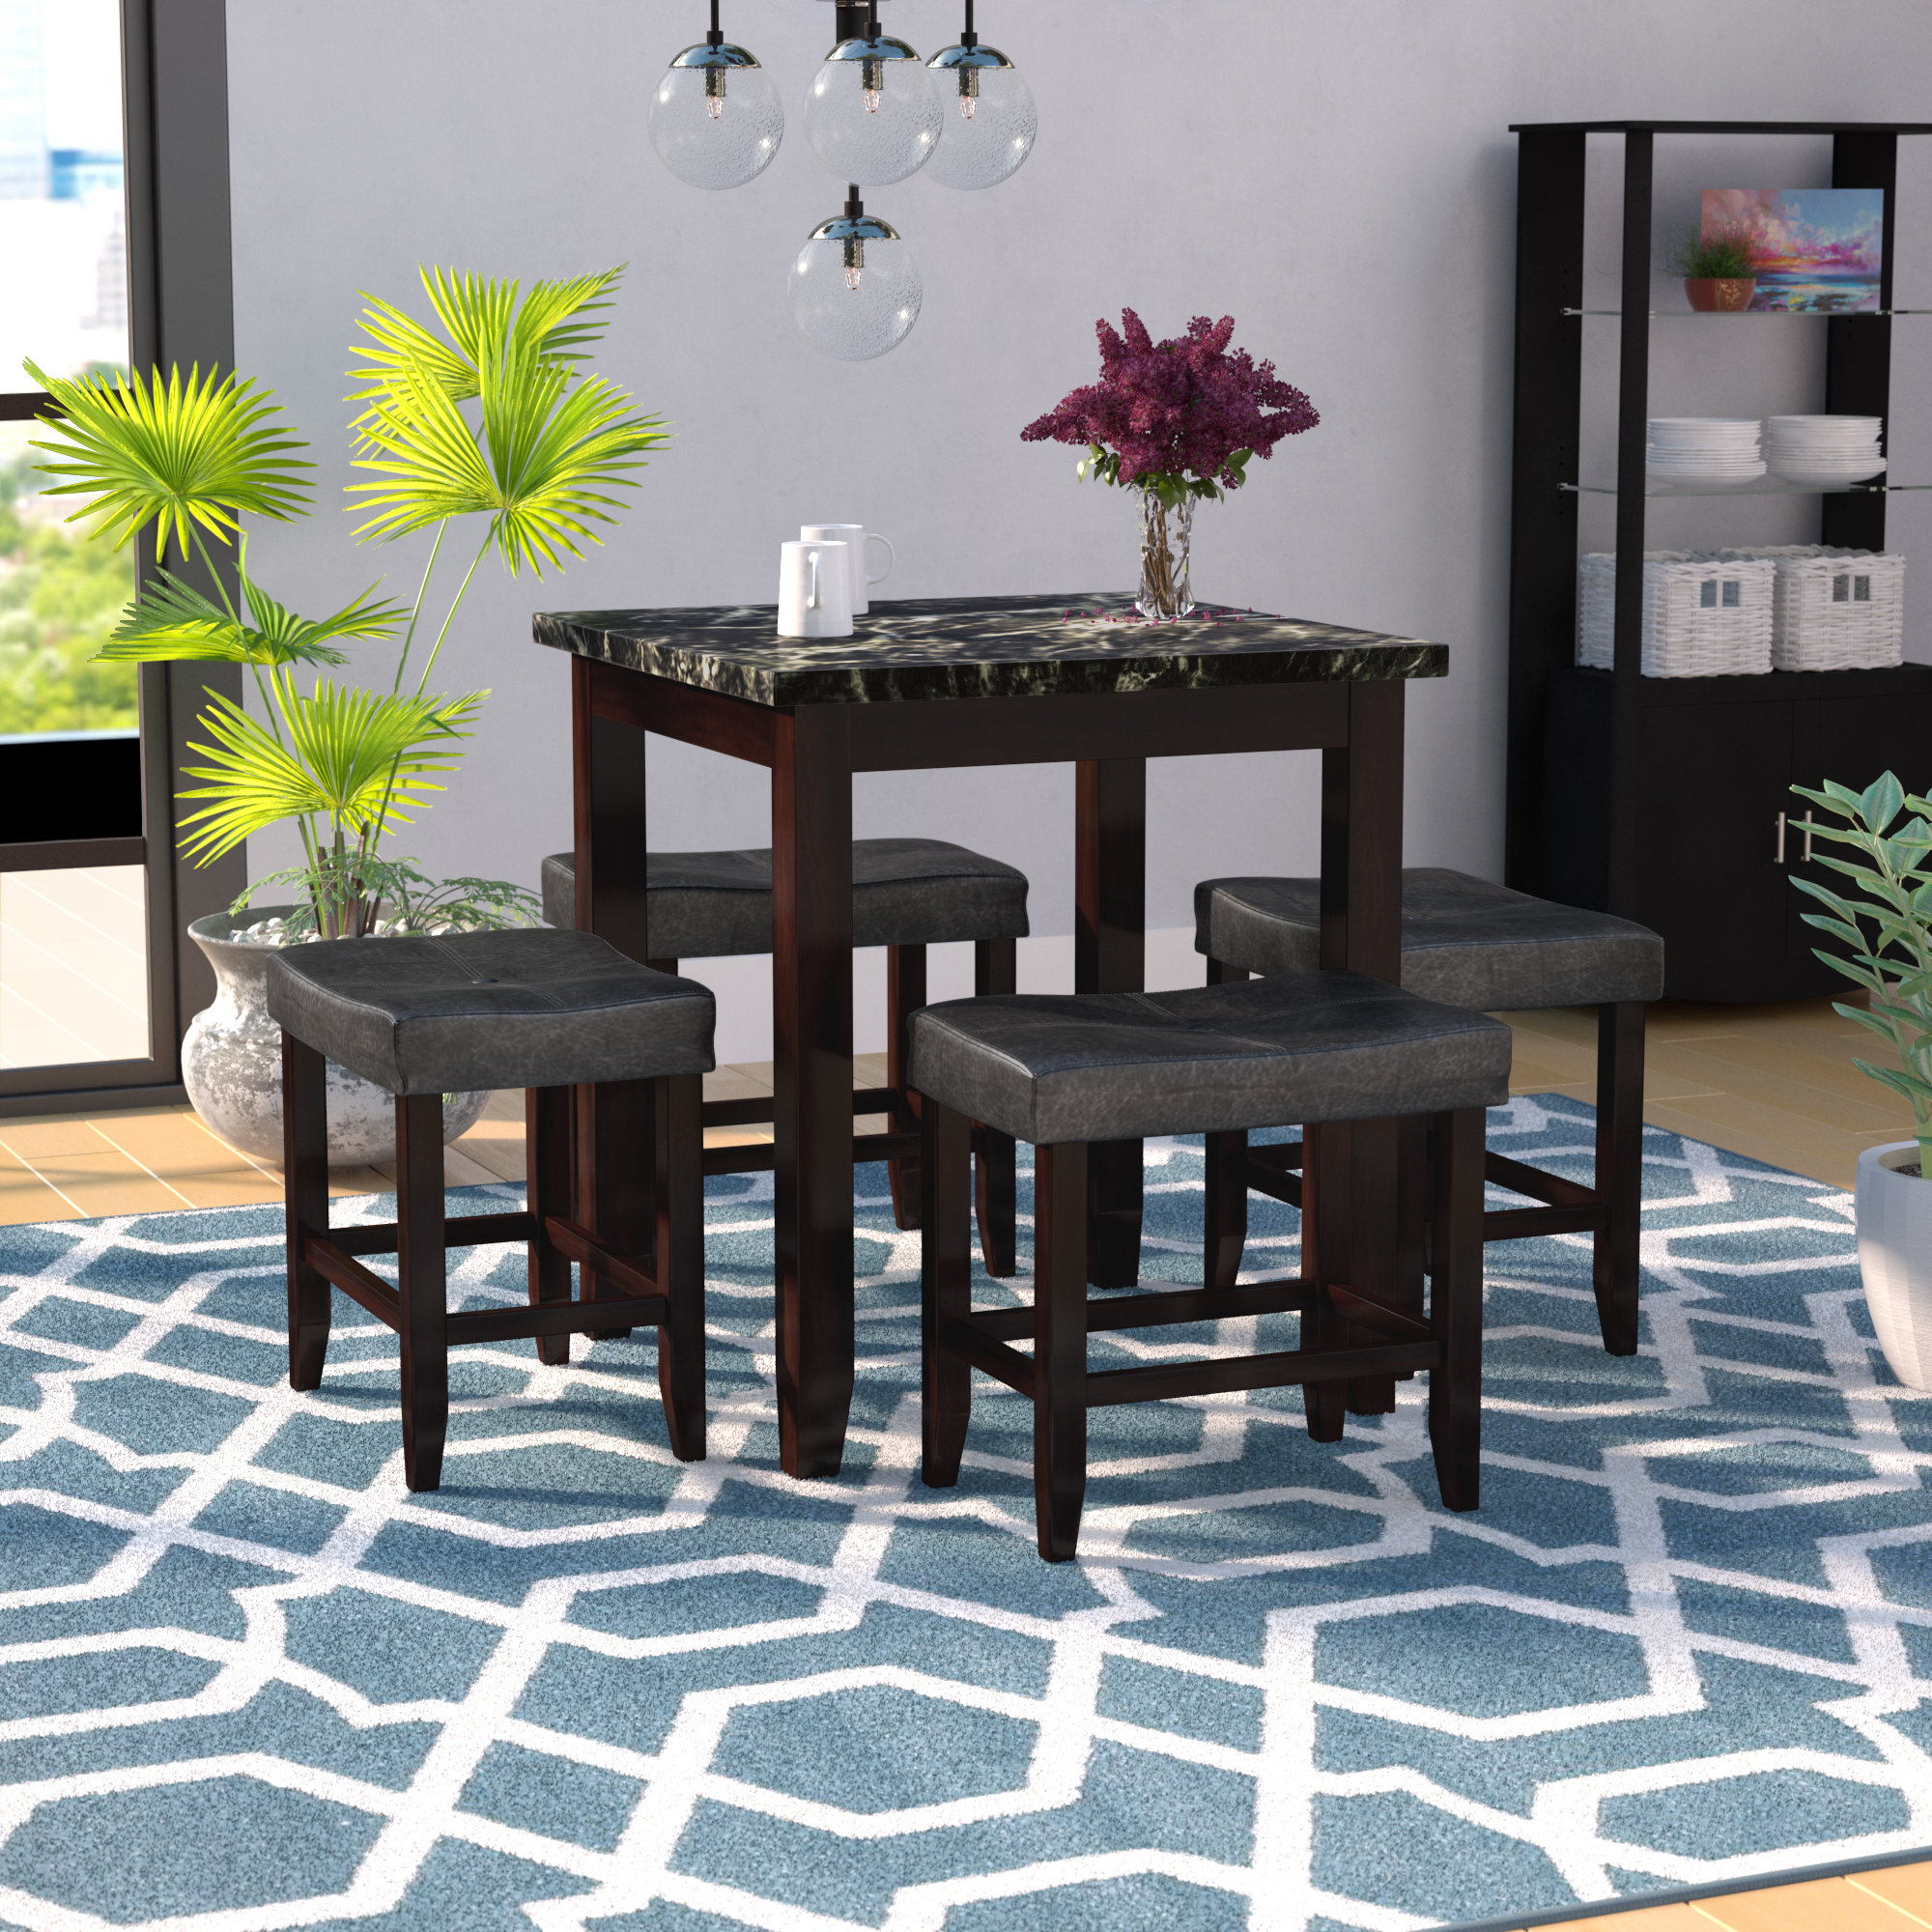 Miskell 5 Piece Dining Sets Within Most Recently Released Latitude Run Dehaven 5 Piece Counter Height Dining Set & Reviews (View 12 of 25)